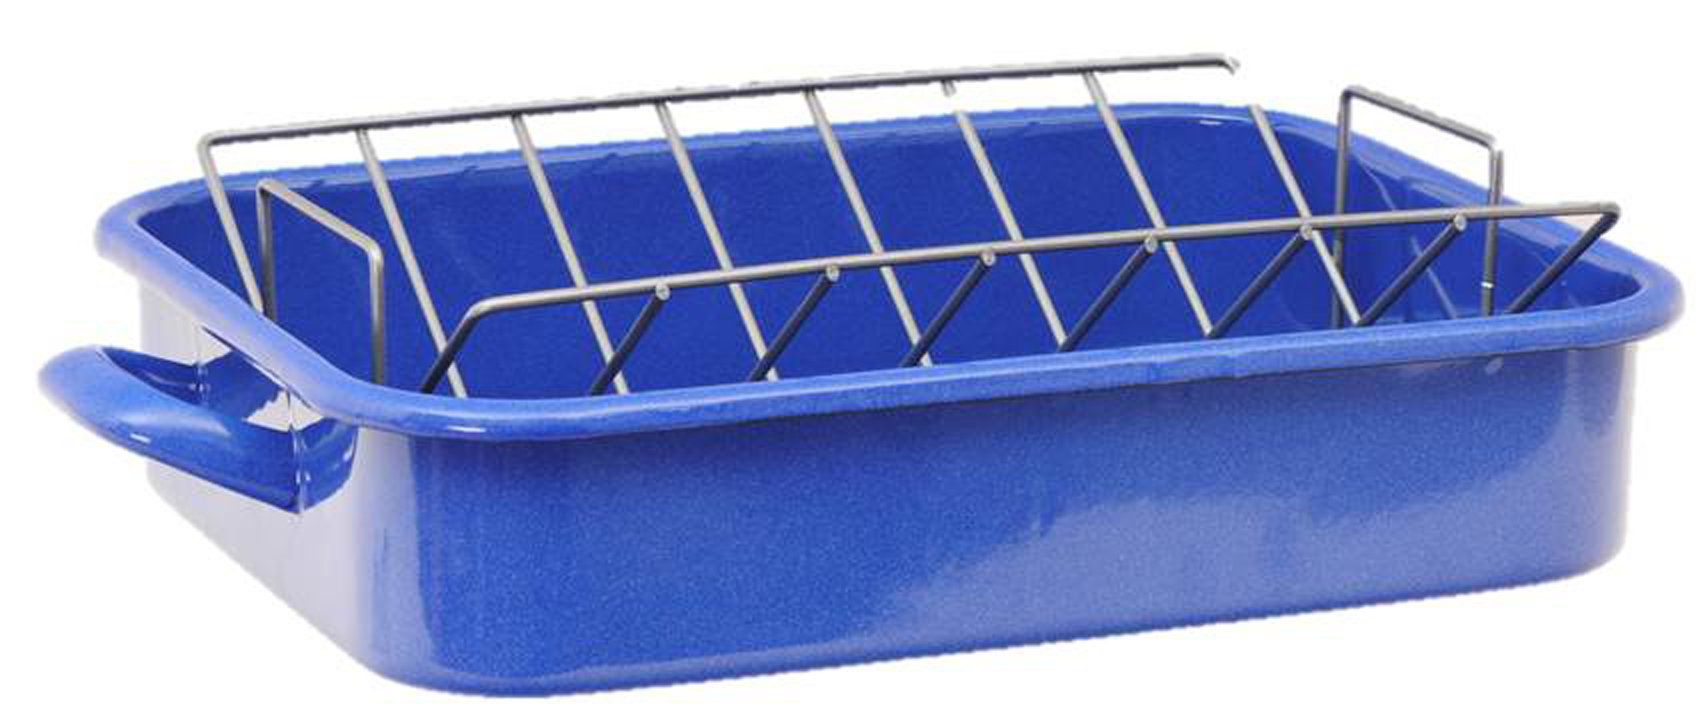 Granite Ware Heavy Gauge Open Roaster with Nonstick V-Rack, Blue